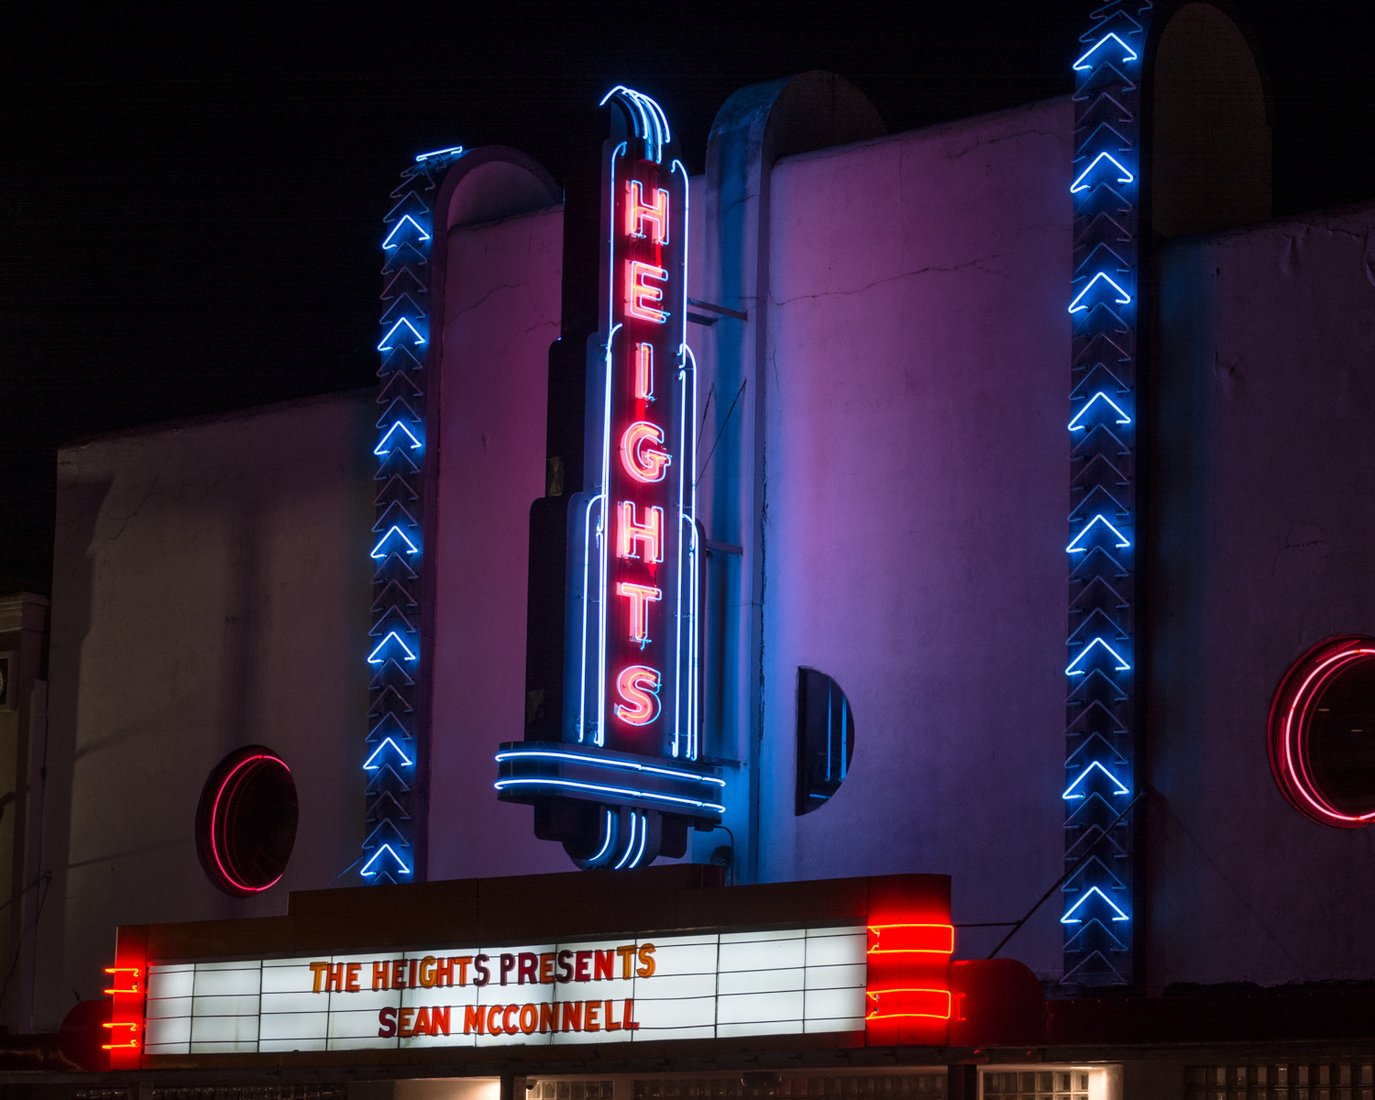 Houston Neon Heights Theatre No. 2 - Houston, Texas